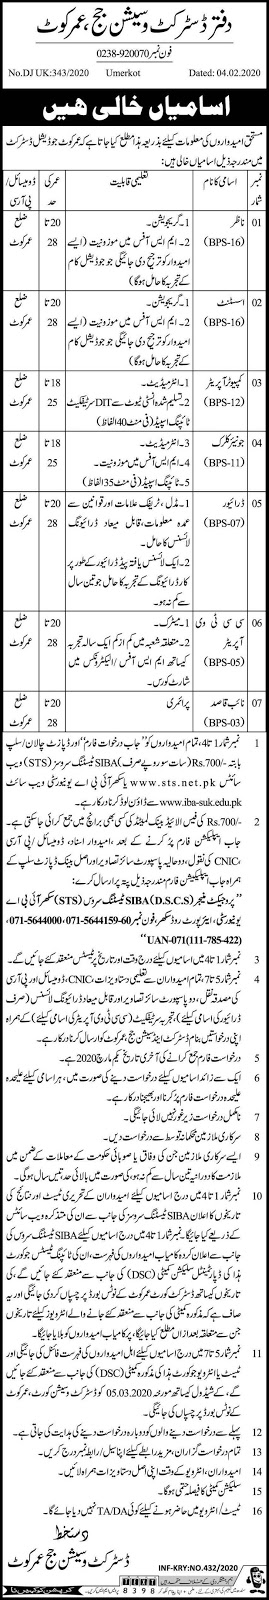 Office of the District & Session Judge Umerkot Jobs 2020